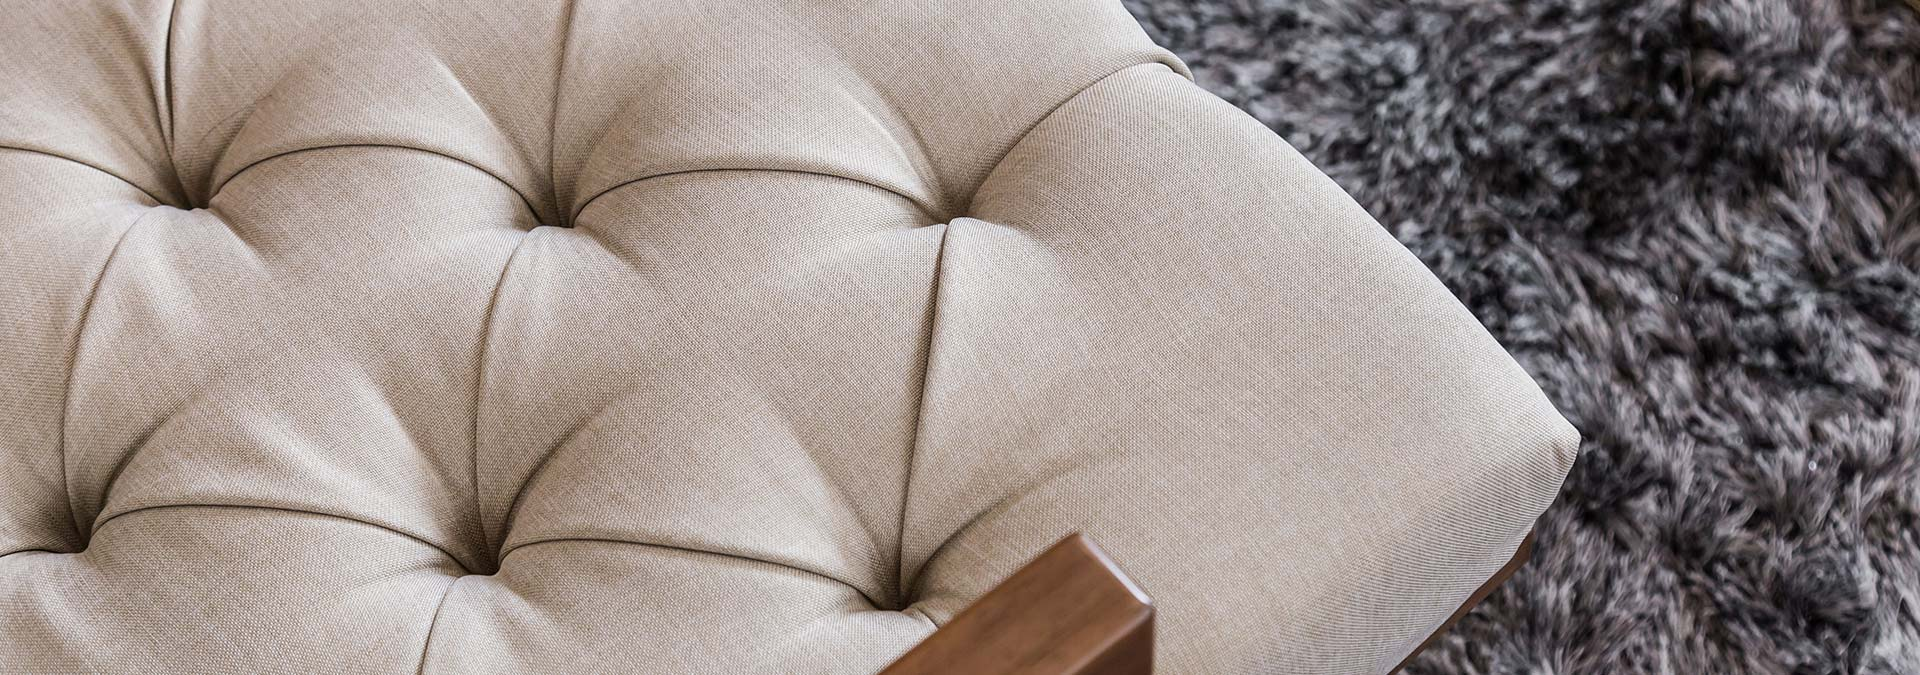 NYC furniture cleaning